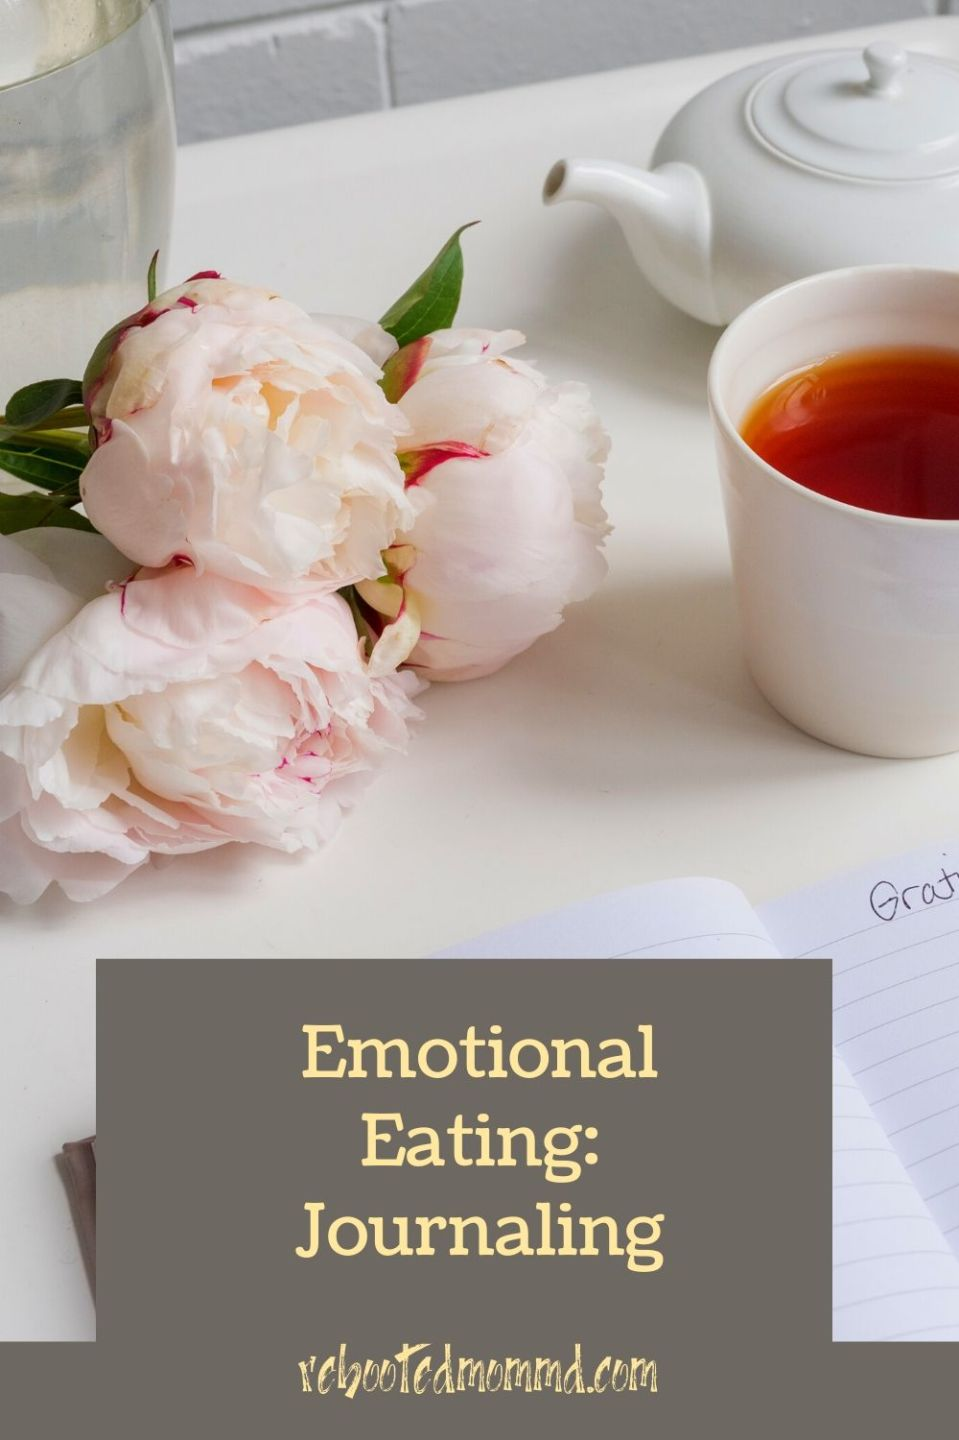 Why You Should Journal if You Are an Emotional Eater